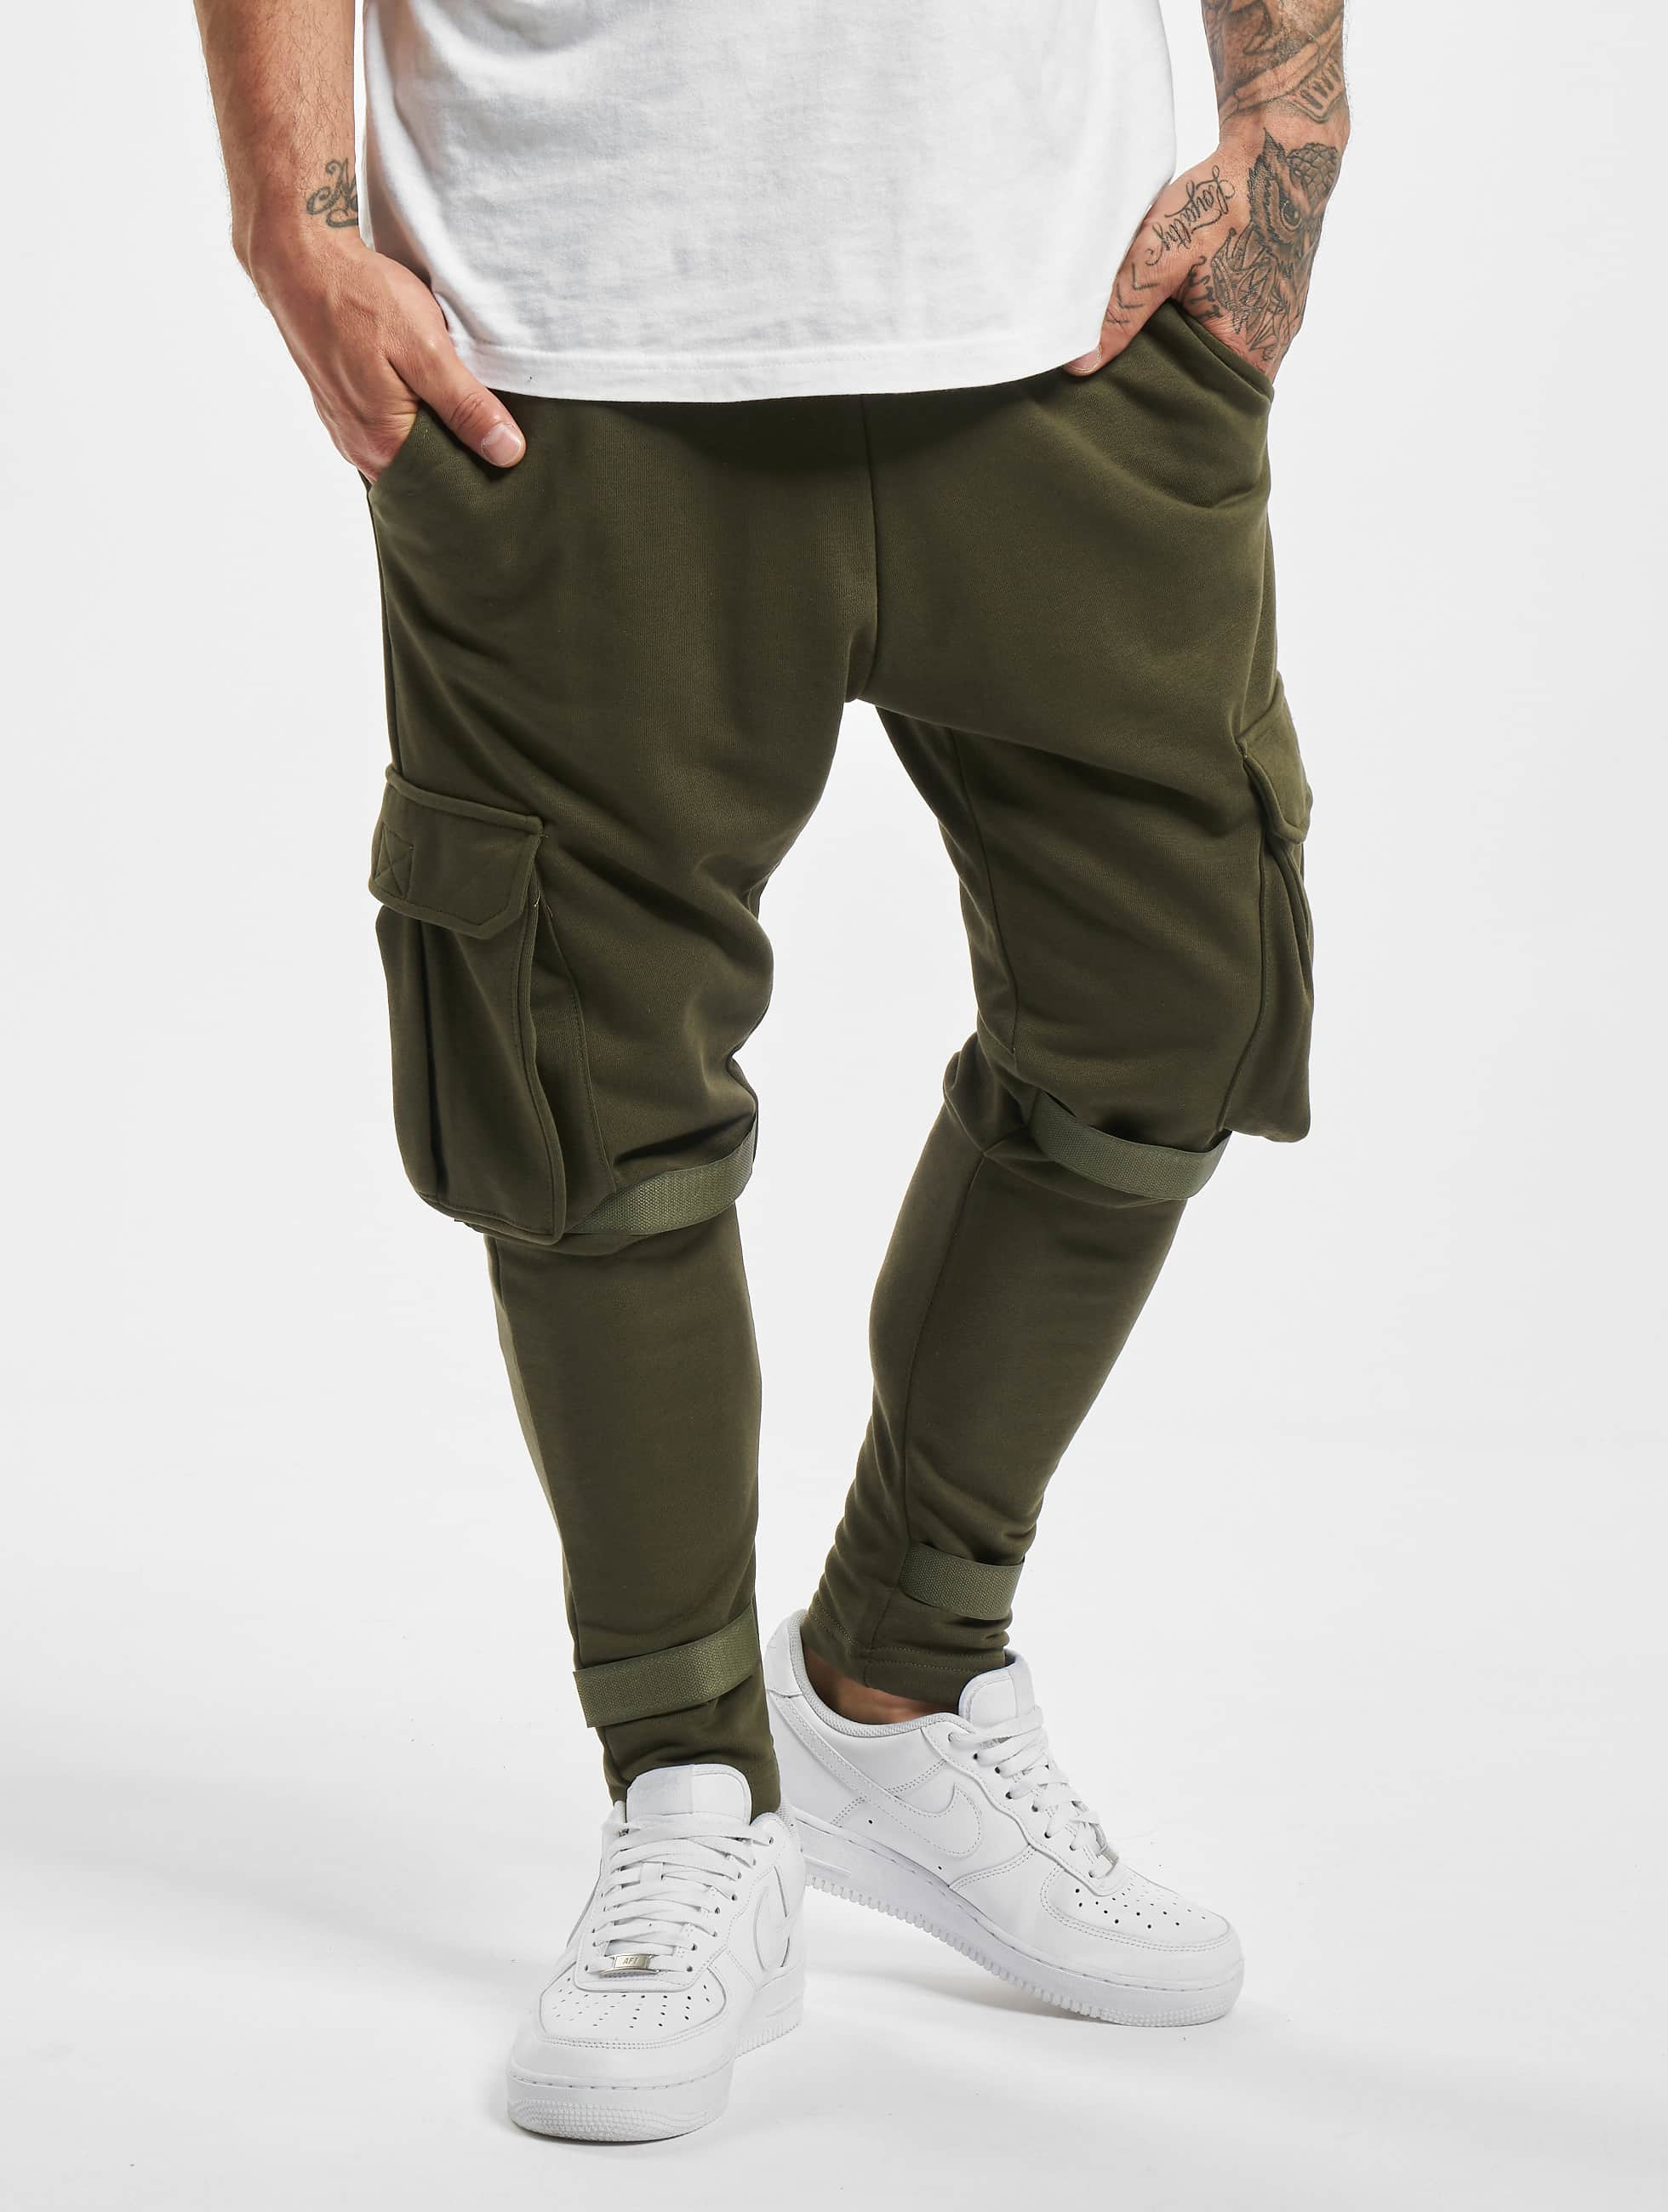 DEF / Sweat Pant Coda in olive 2XL